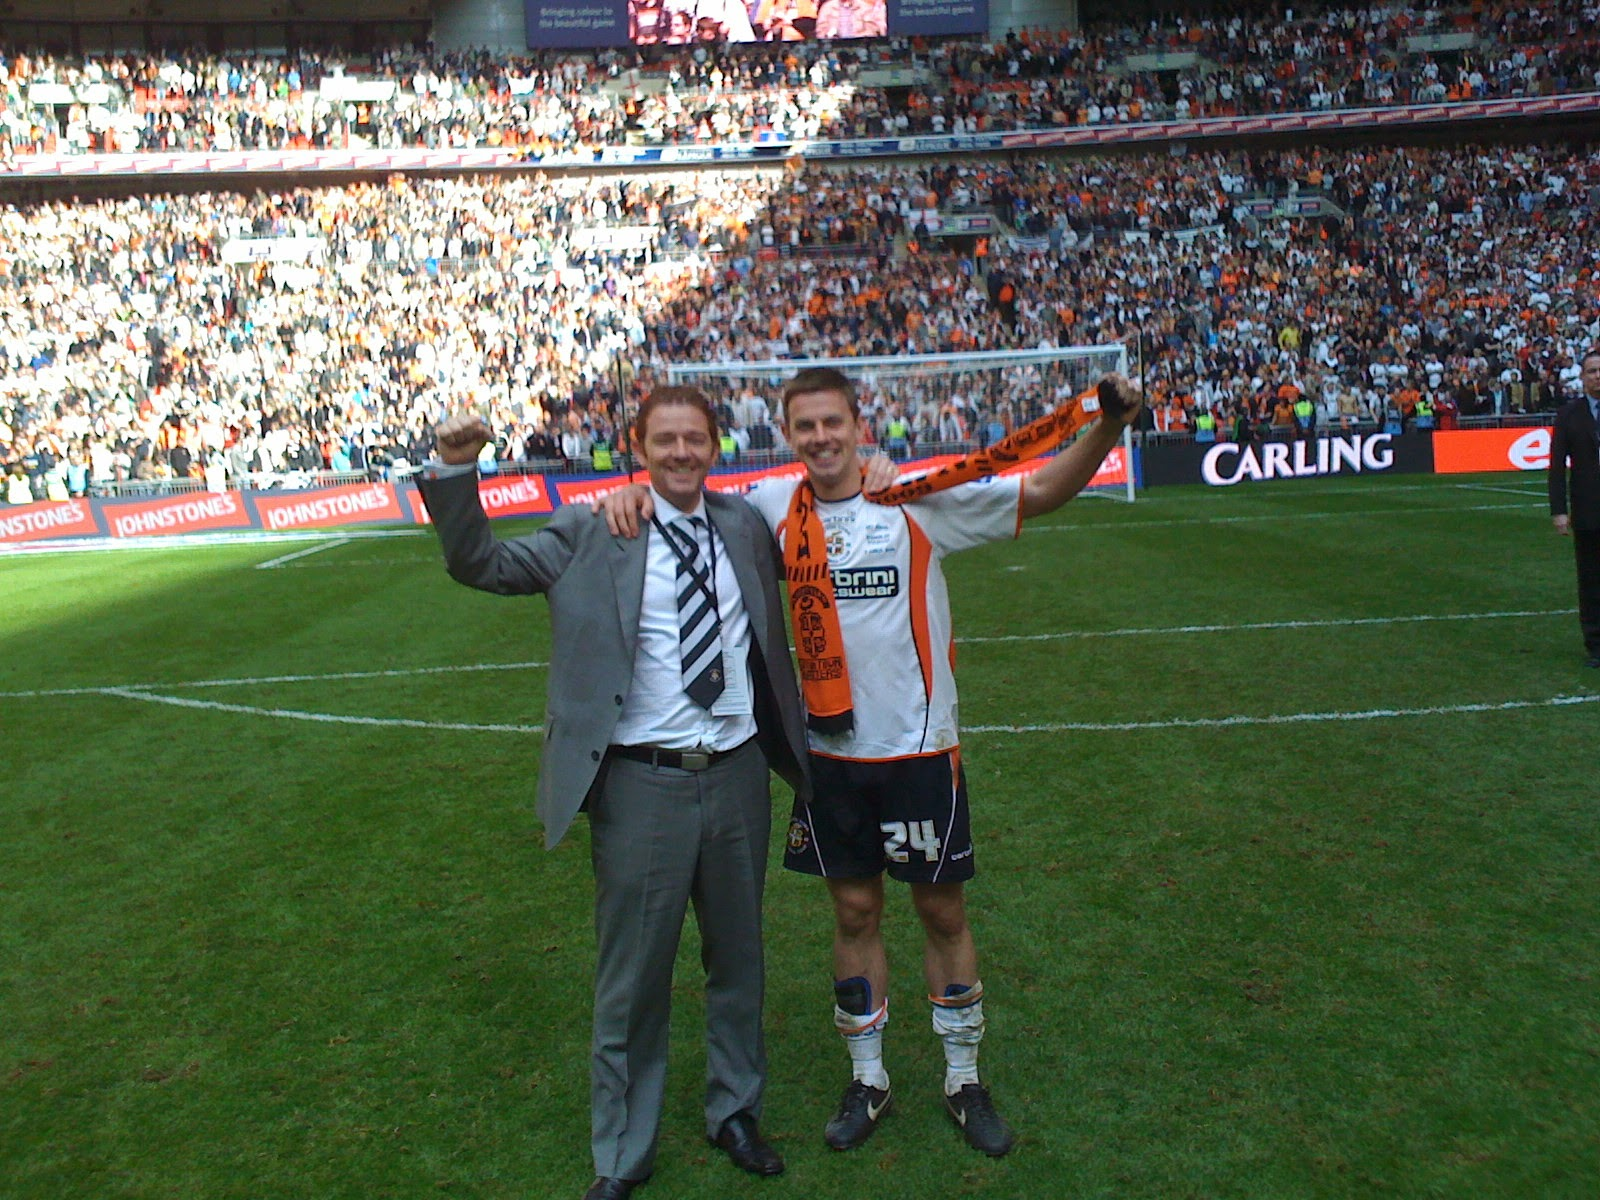 At Wembley with LTFC